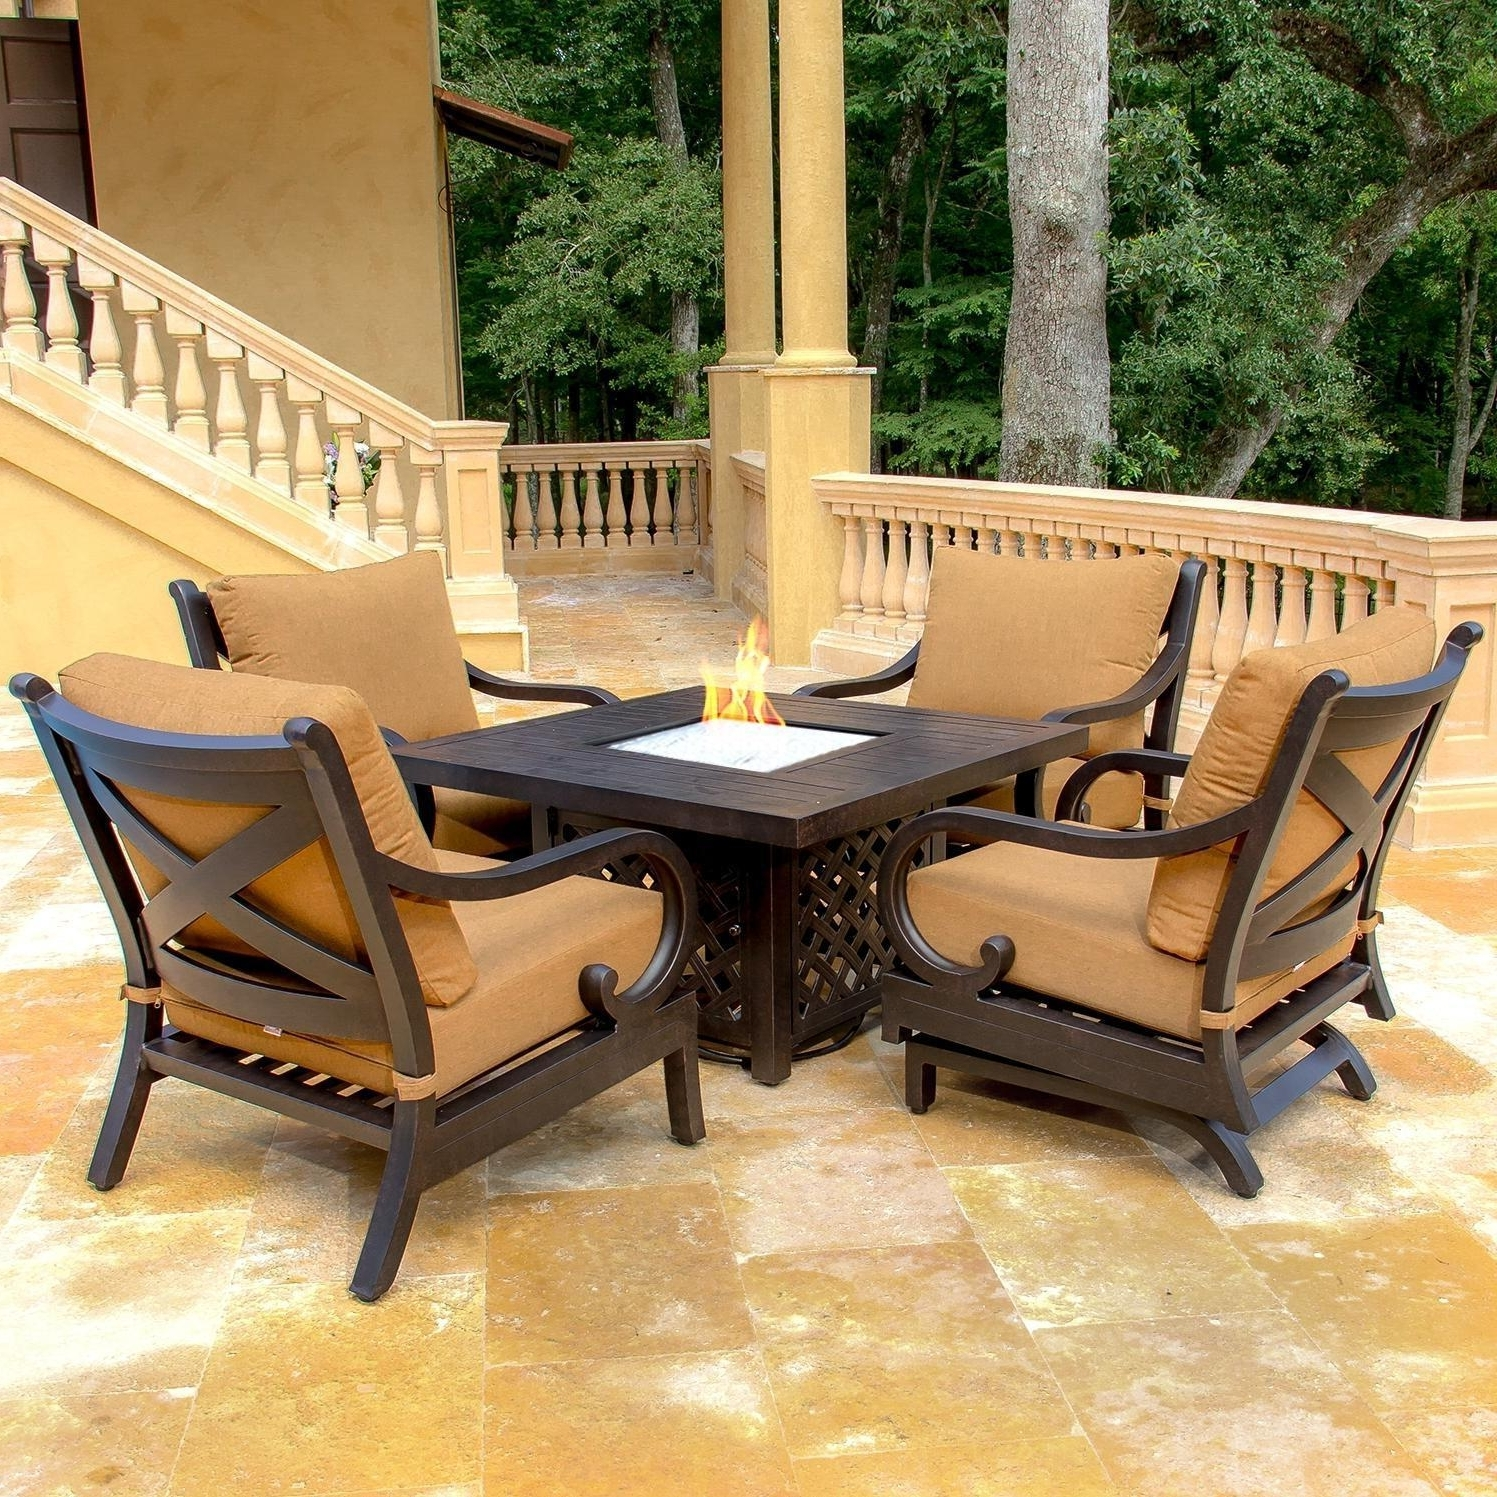 Patio Conversation Sets Without Cushions Within Well Known Awesome Collection Of Fortable Patio Furniture Home Simple Patio (View 11 of 20)